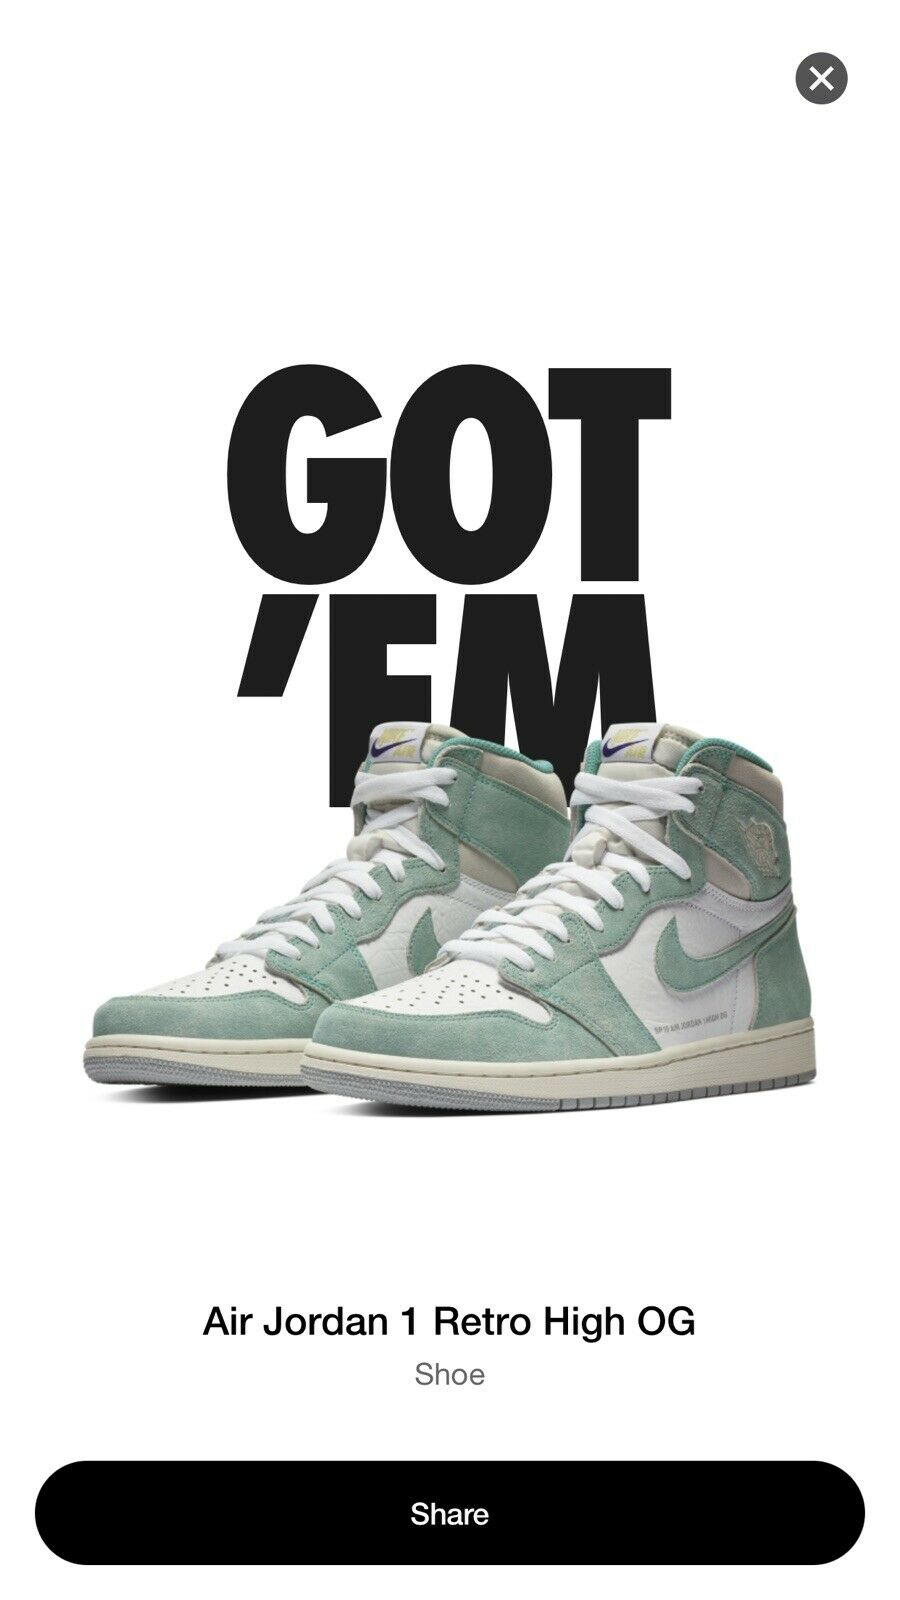 Air Jordan 1 Turbo Green Size 10 CONFIRMED Charlotte Vintage Nike